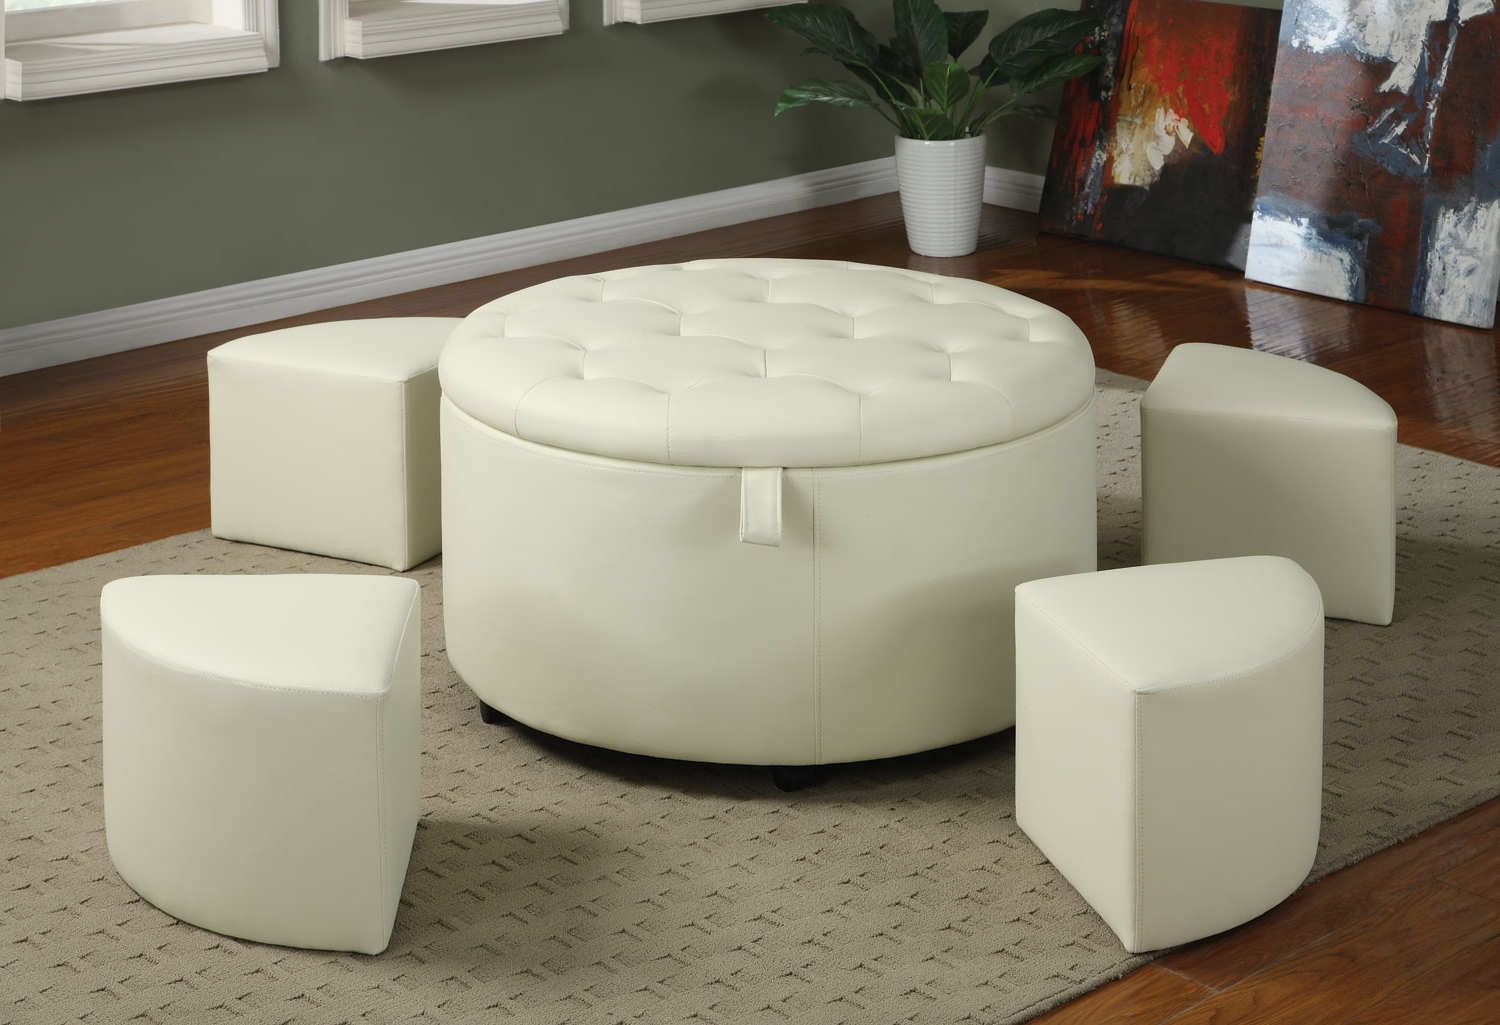 2017 Round Button Tufted Coffee Tables Pertaining To Saving Small Spaces Living Room Design Using White Round Leather (View 11 of 20)